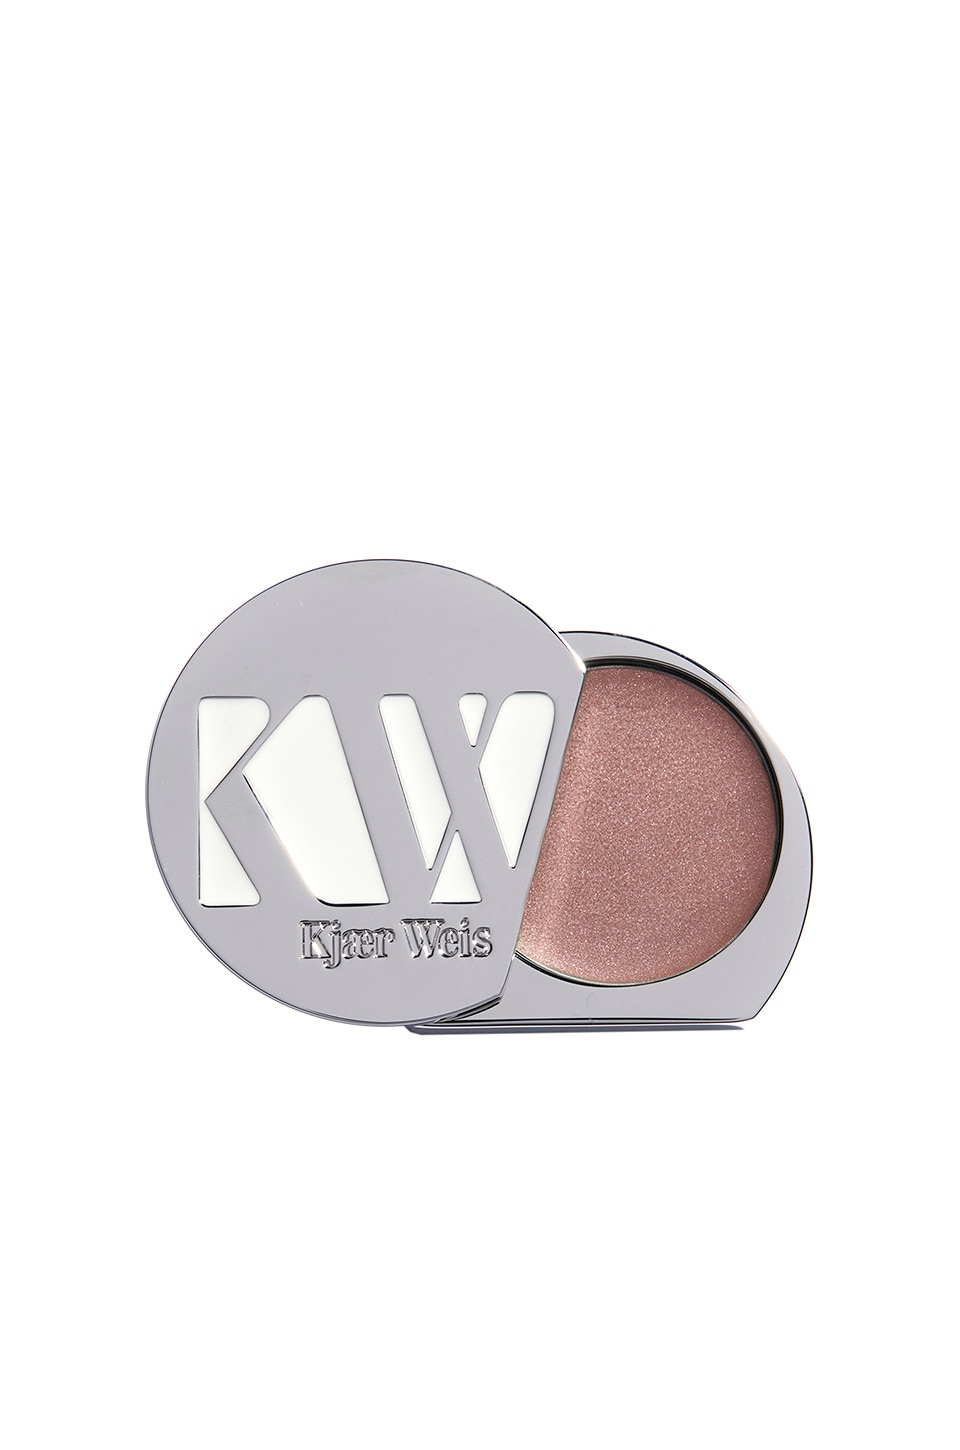 Kjaer Weis Cream Eye Shadow in Gorgeous